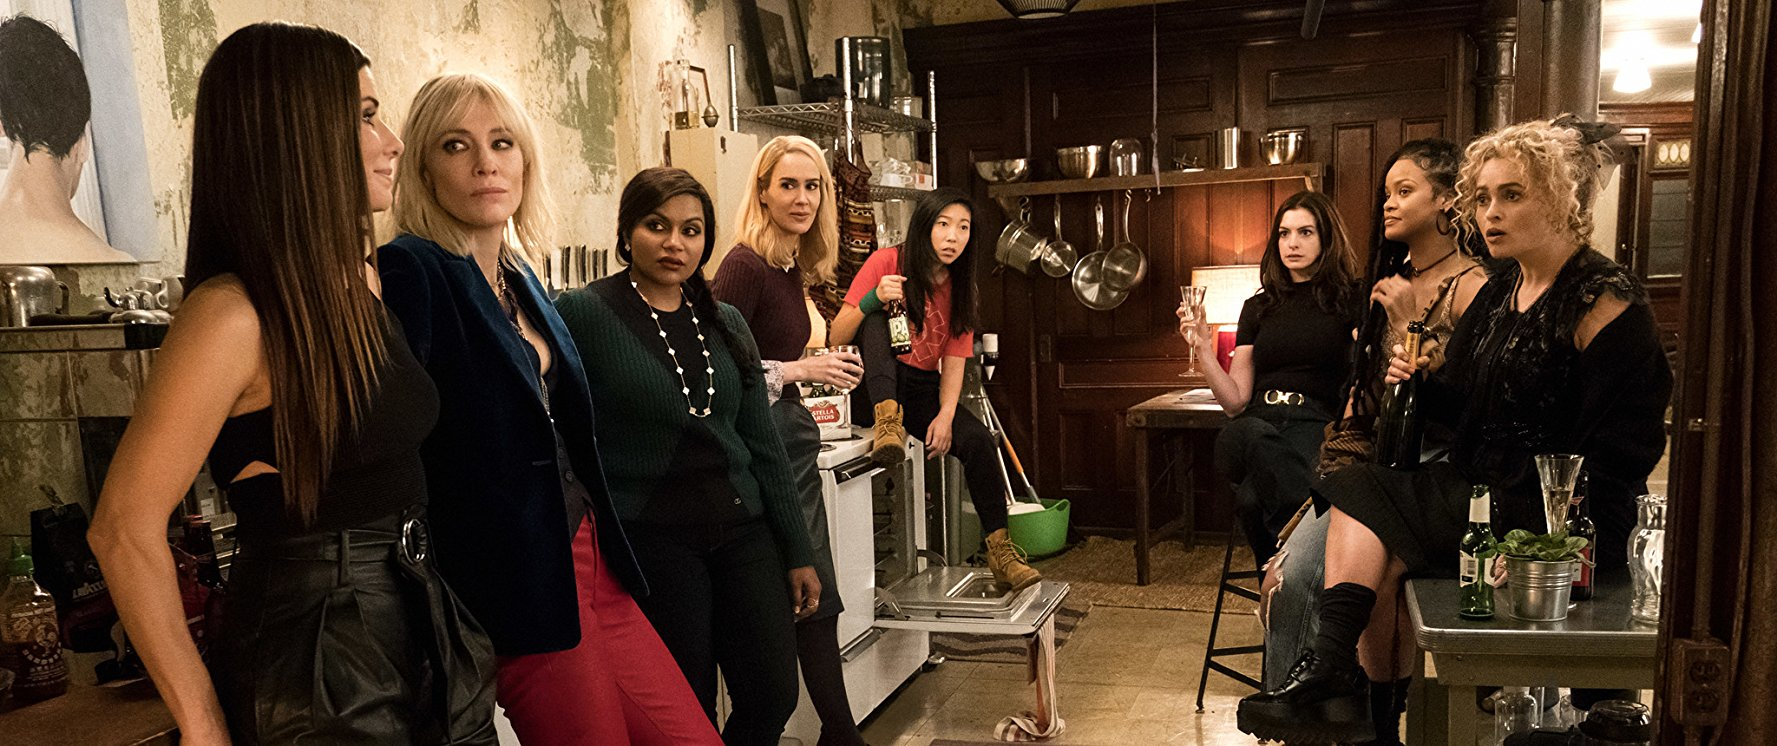 ocean's 8, movie reviews, lucas mirabella